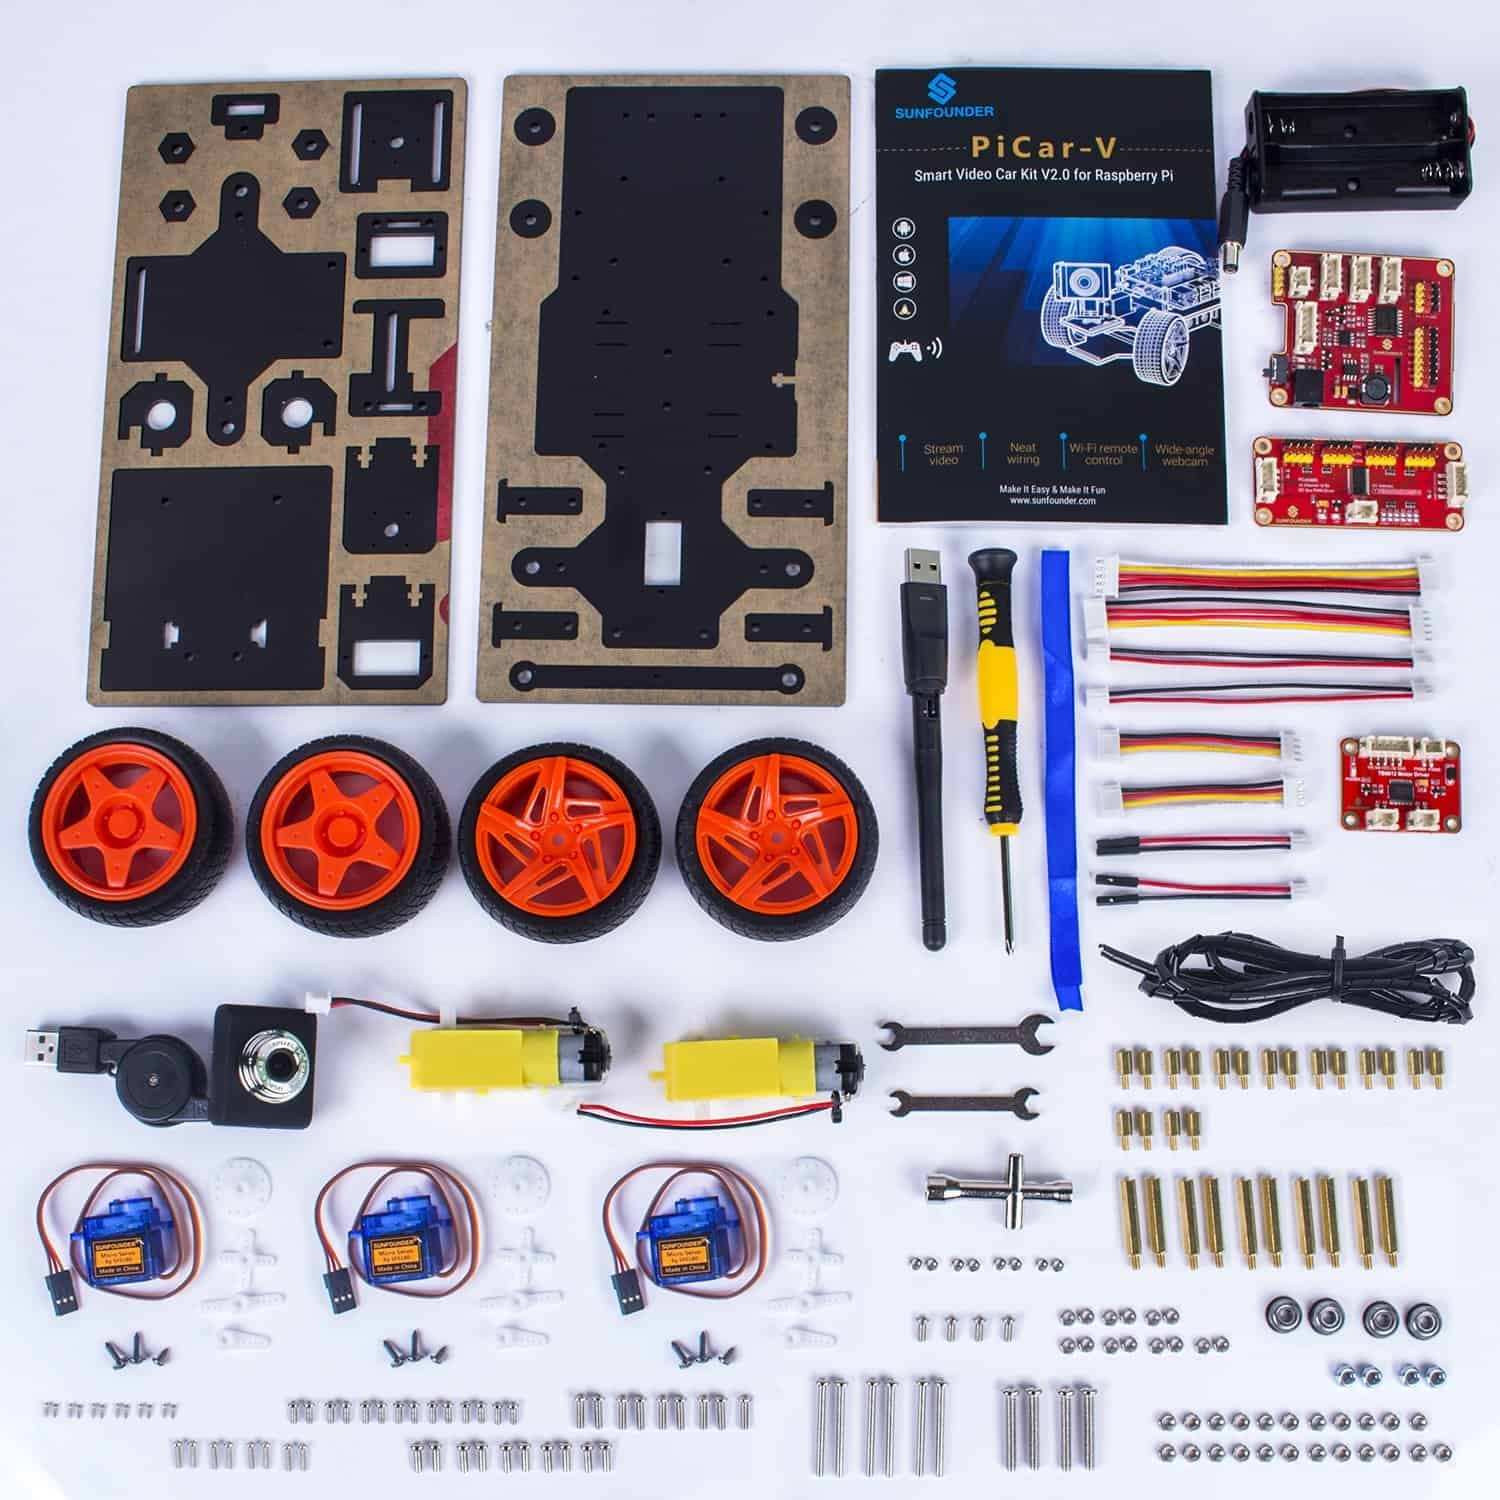 The sunfounder car components